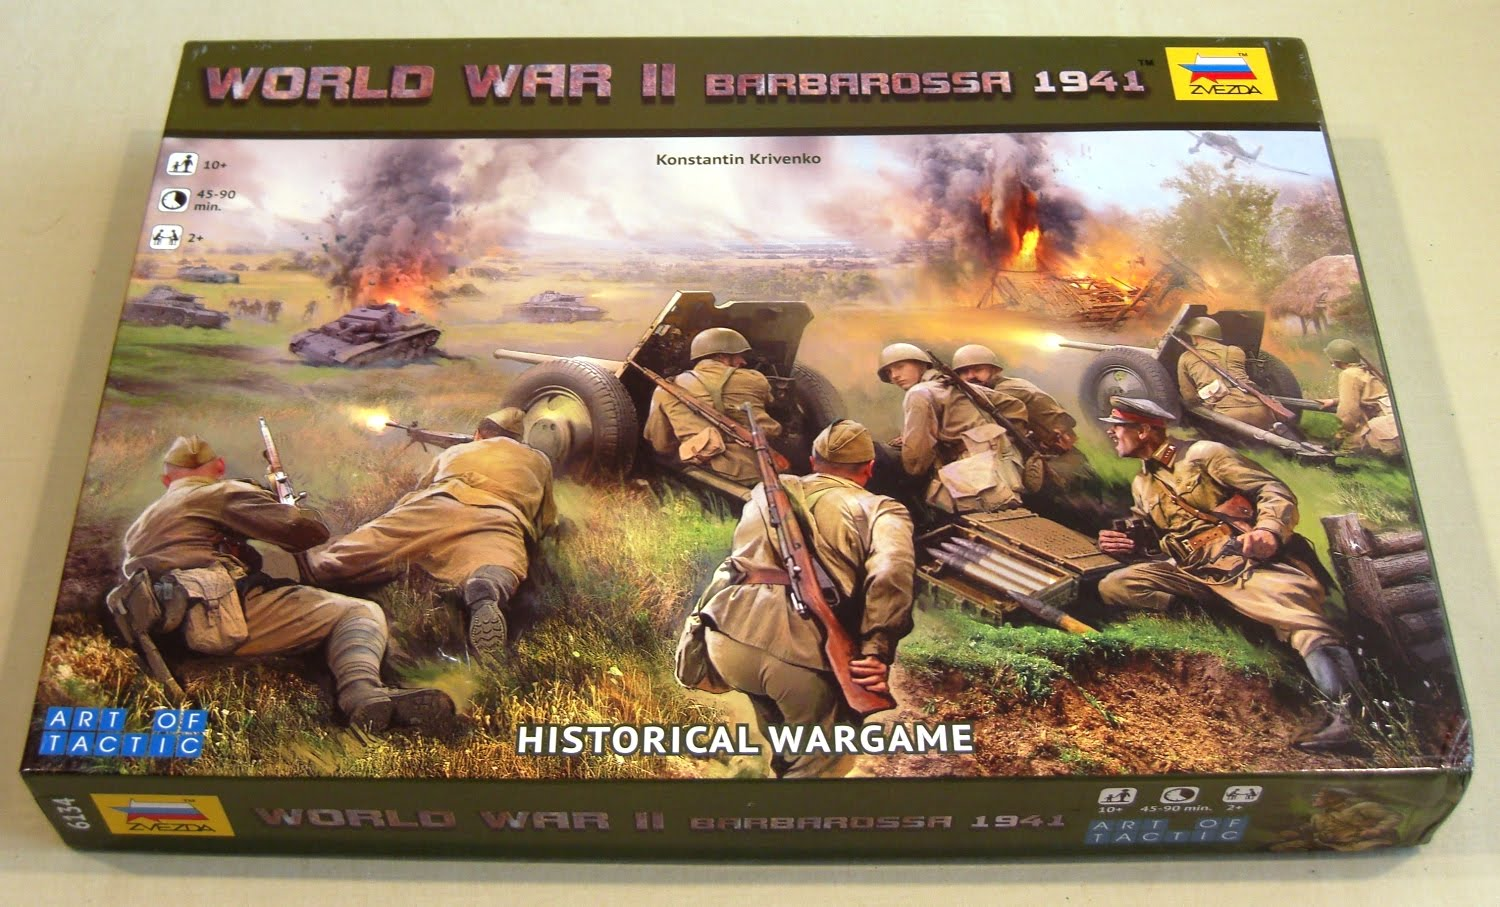 Wargaming Miscellany: Art of Tactic: Barbarossa 1941: Inside the box